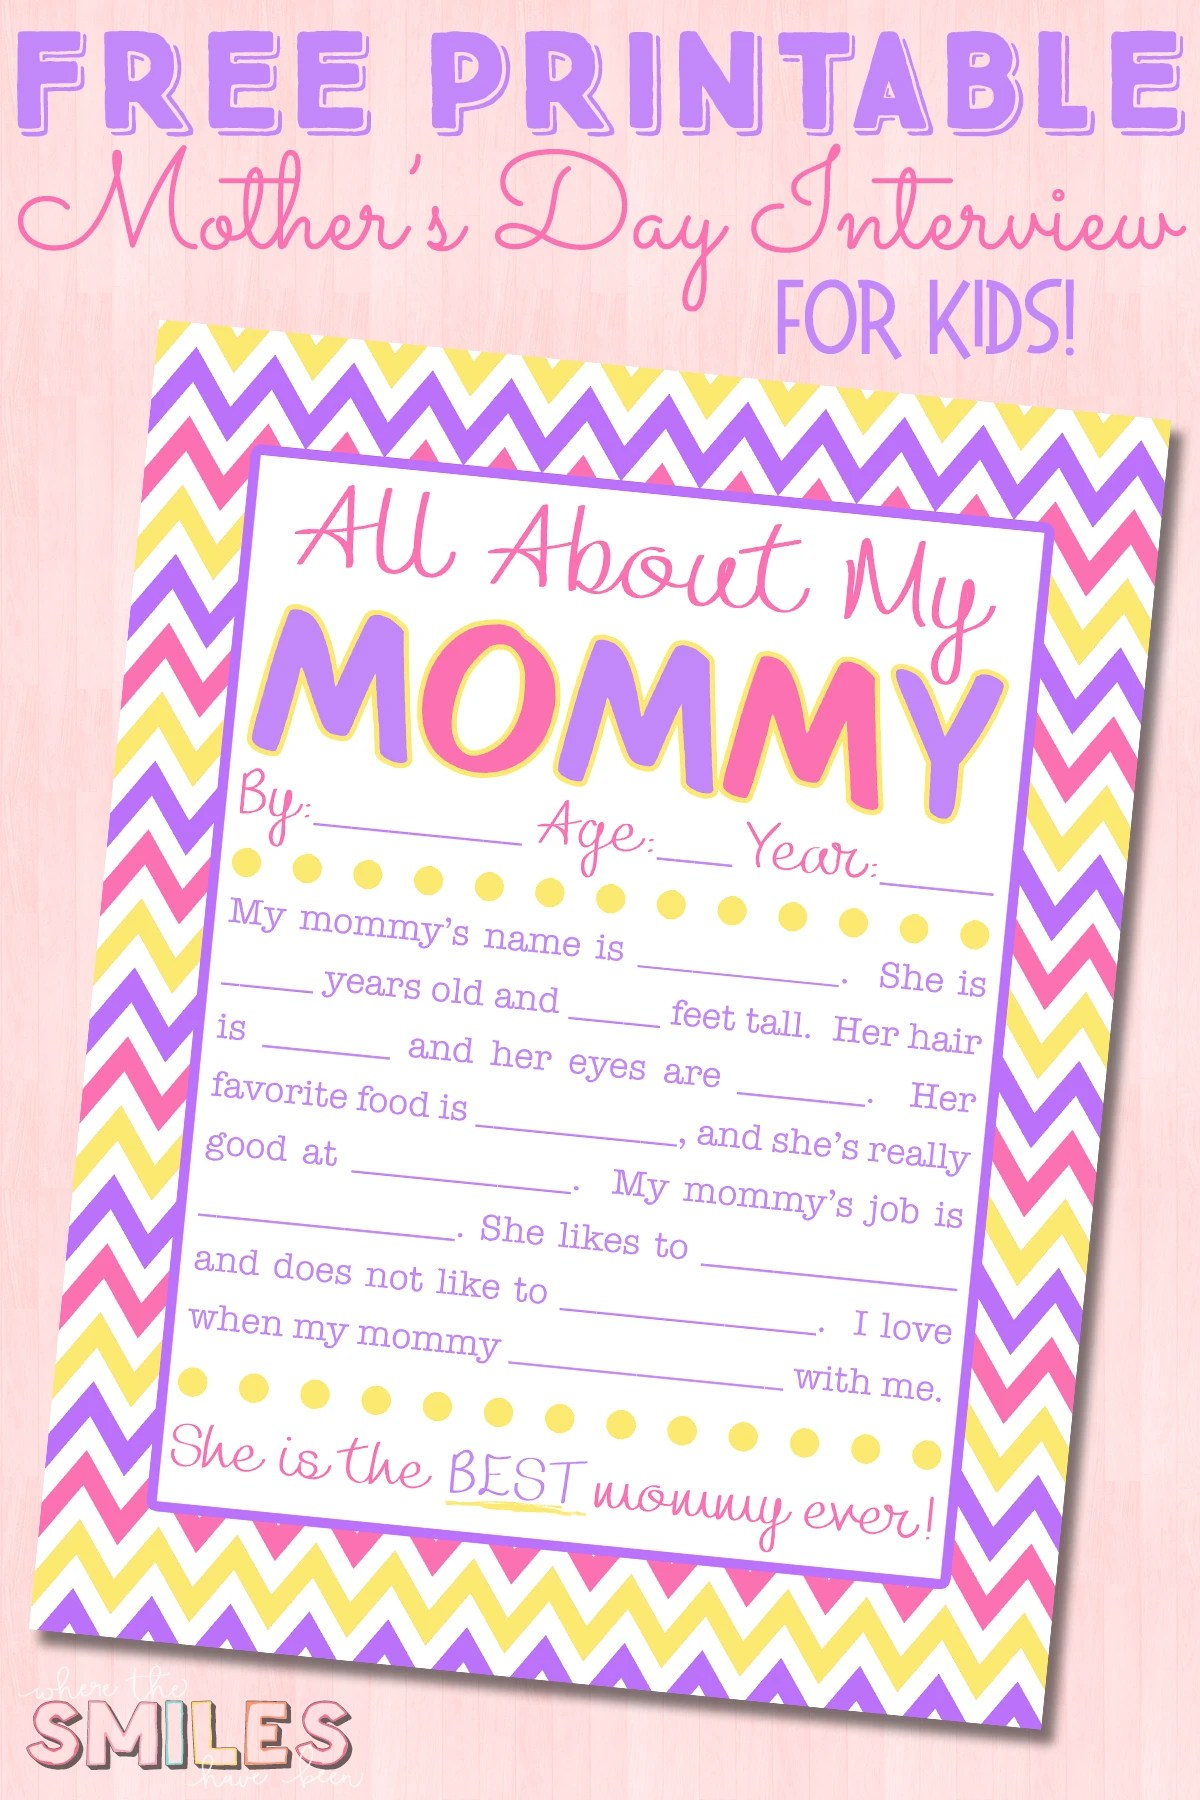 All About My Mommy Interview With FREE Printable! Where The Smiles Have  Been #MothersDay